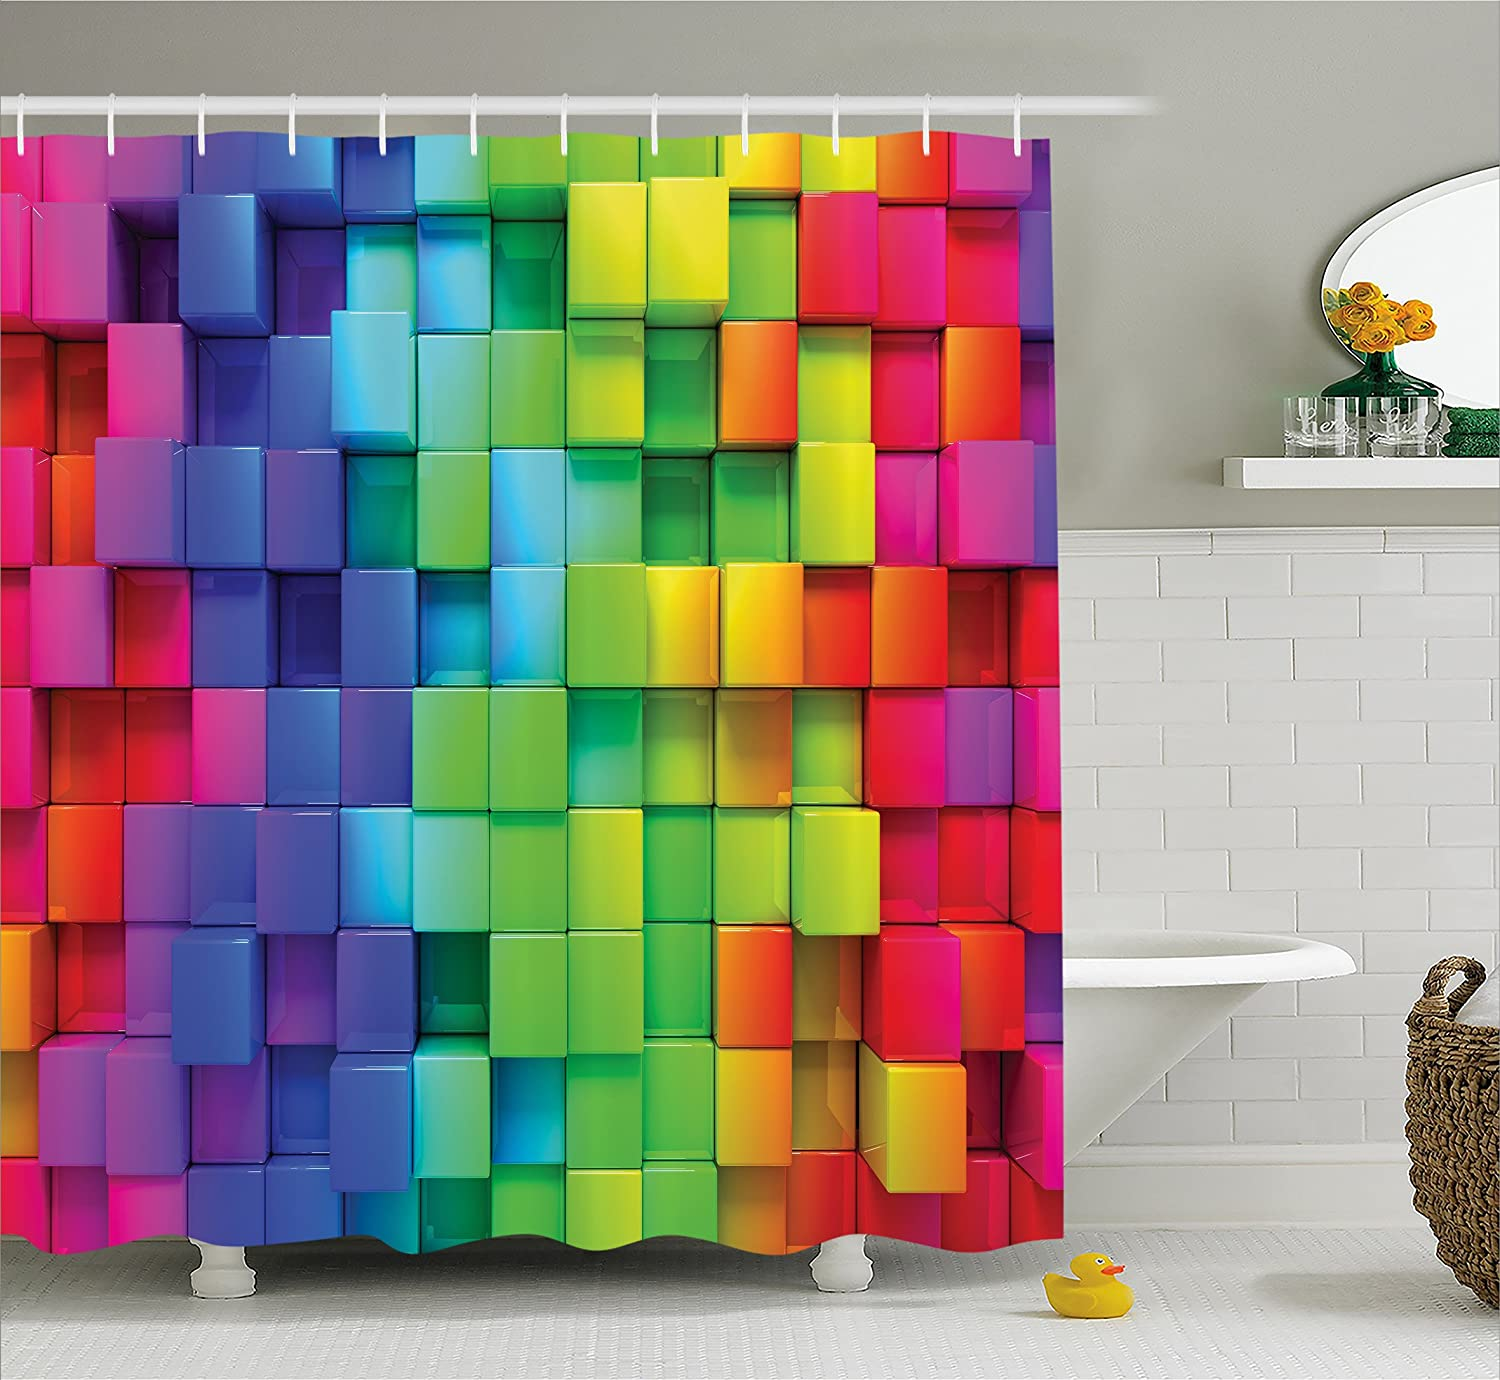 Ambesonne Colorful Home Decor Shower Curtain, Rainbow Color Contour Display Futuristic Block Brick-Like Geometric Artisan, Fabric Bathroom Decor Set with Hooks, 84 Inches Extra Long, Multi